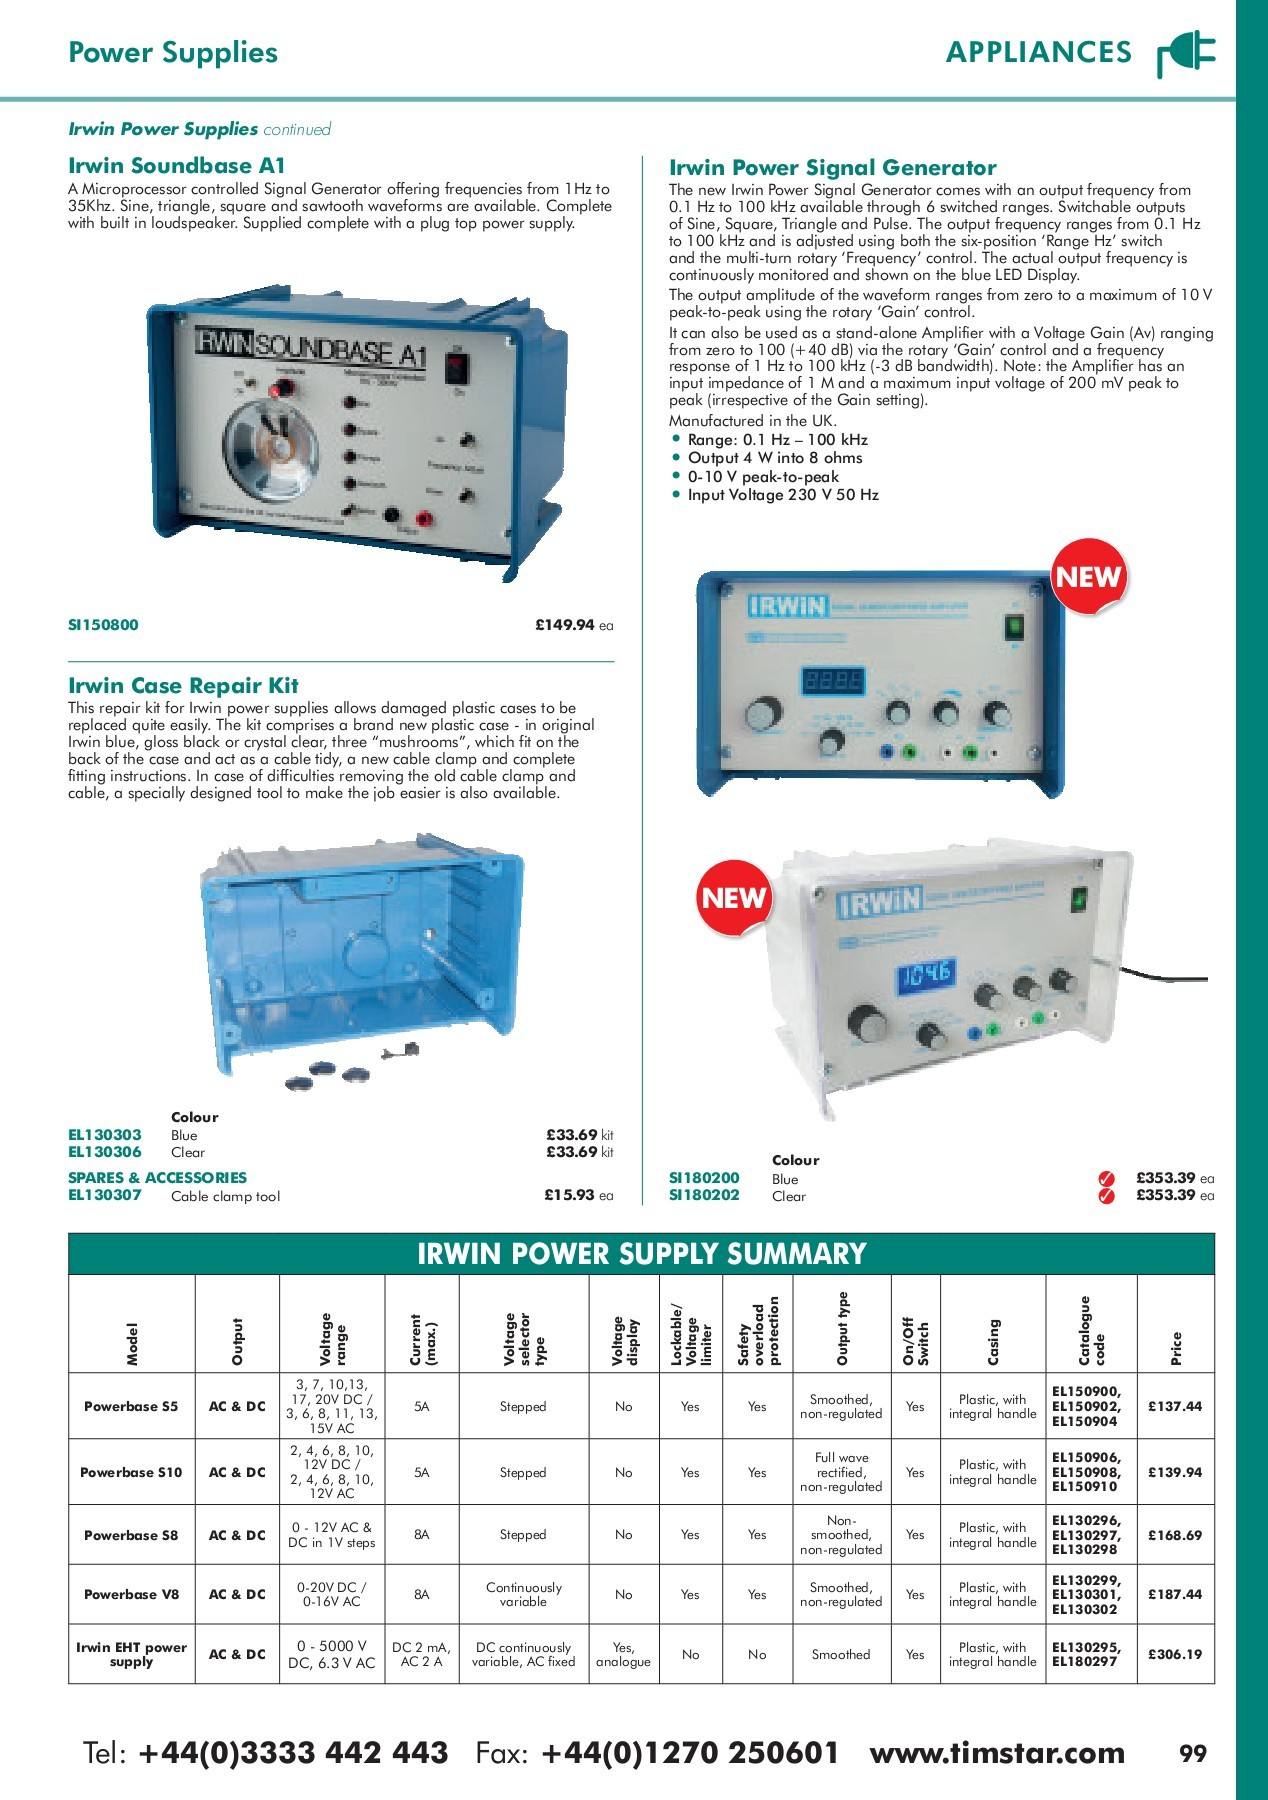 Isolated Pressure Transducer Series GGS-LE Polypropylene 0-150 PSI